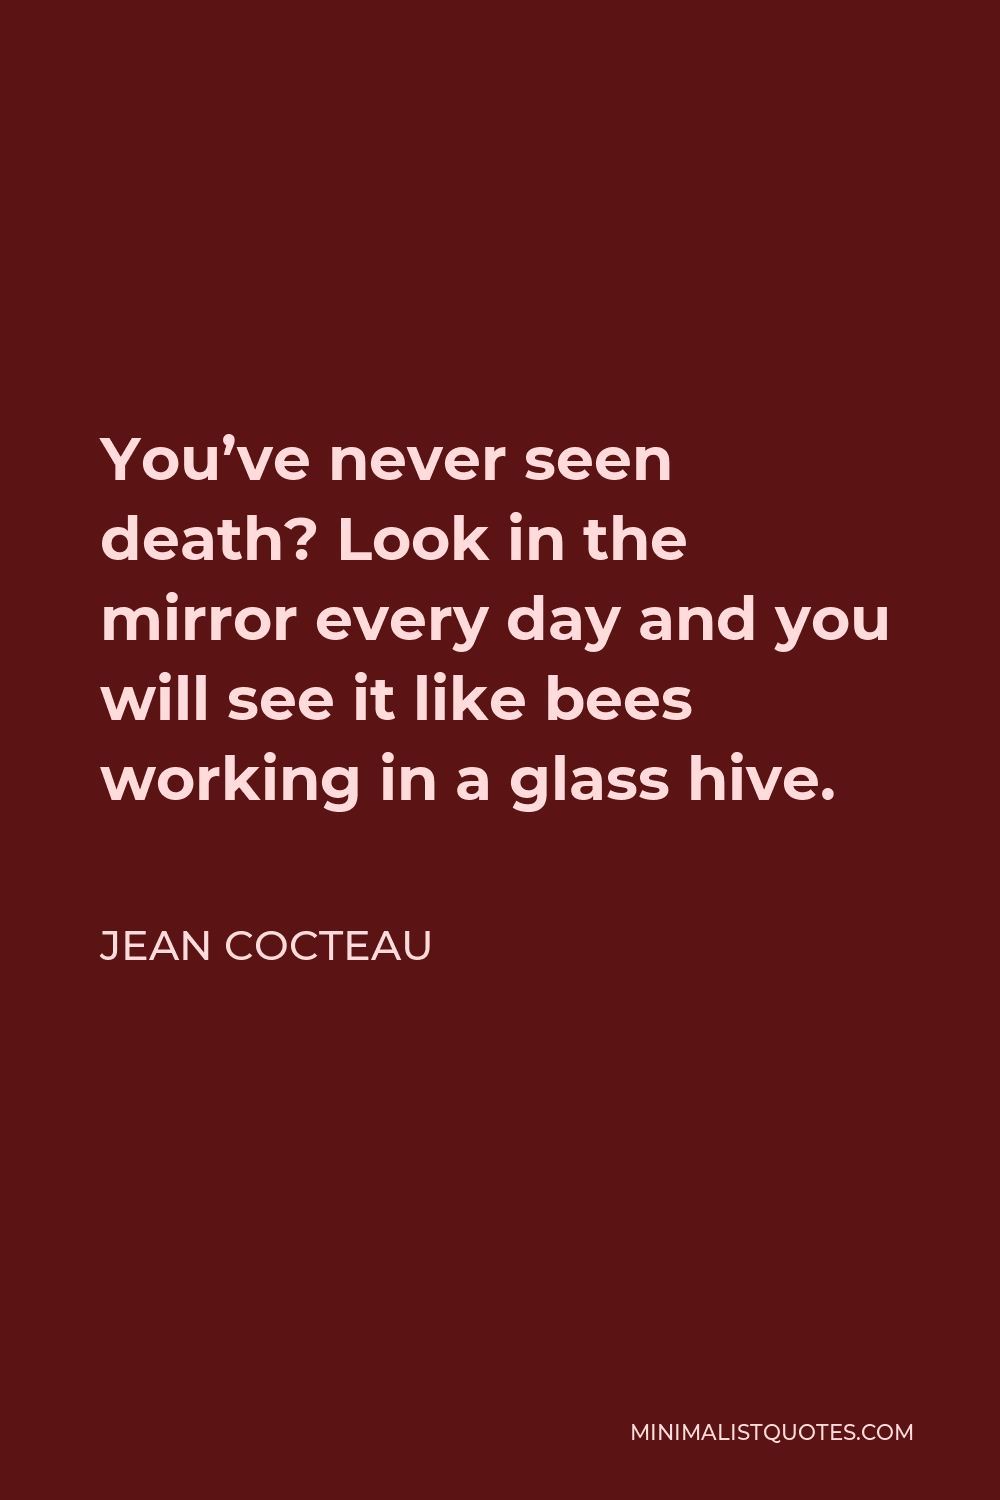 Jean Cocteau Quote - You've never seen death? Look in the mirror every day and you will see it like bees working in a glass hive.